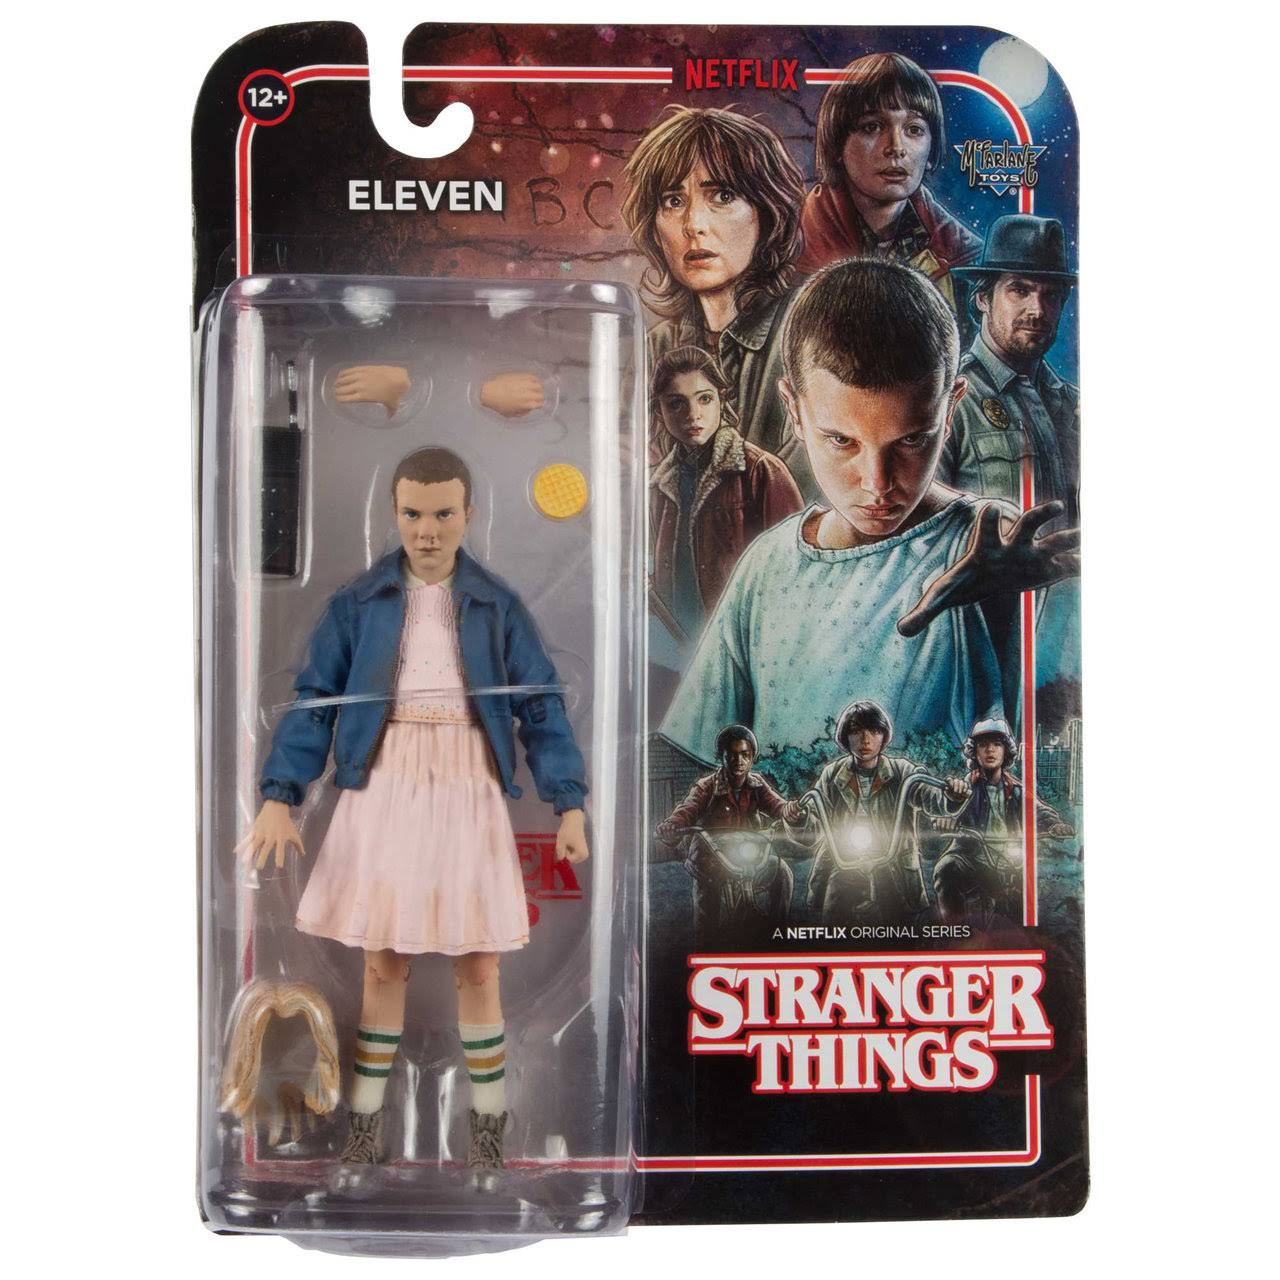 Stranger Things Eleven Action Figure - 7""